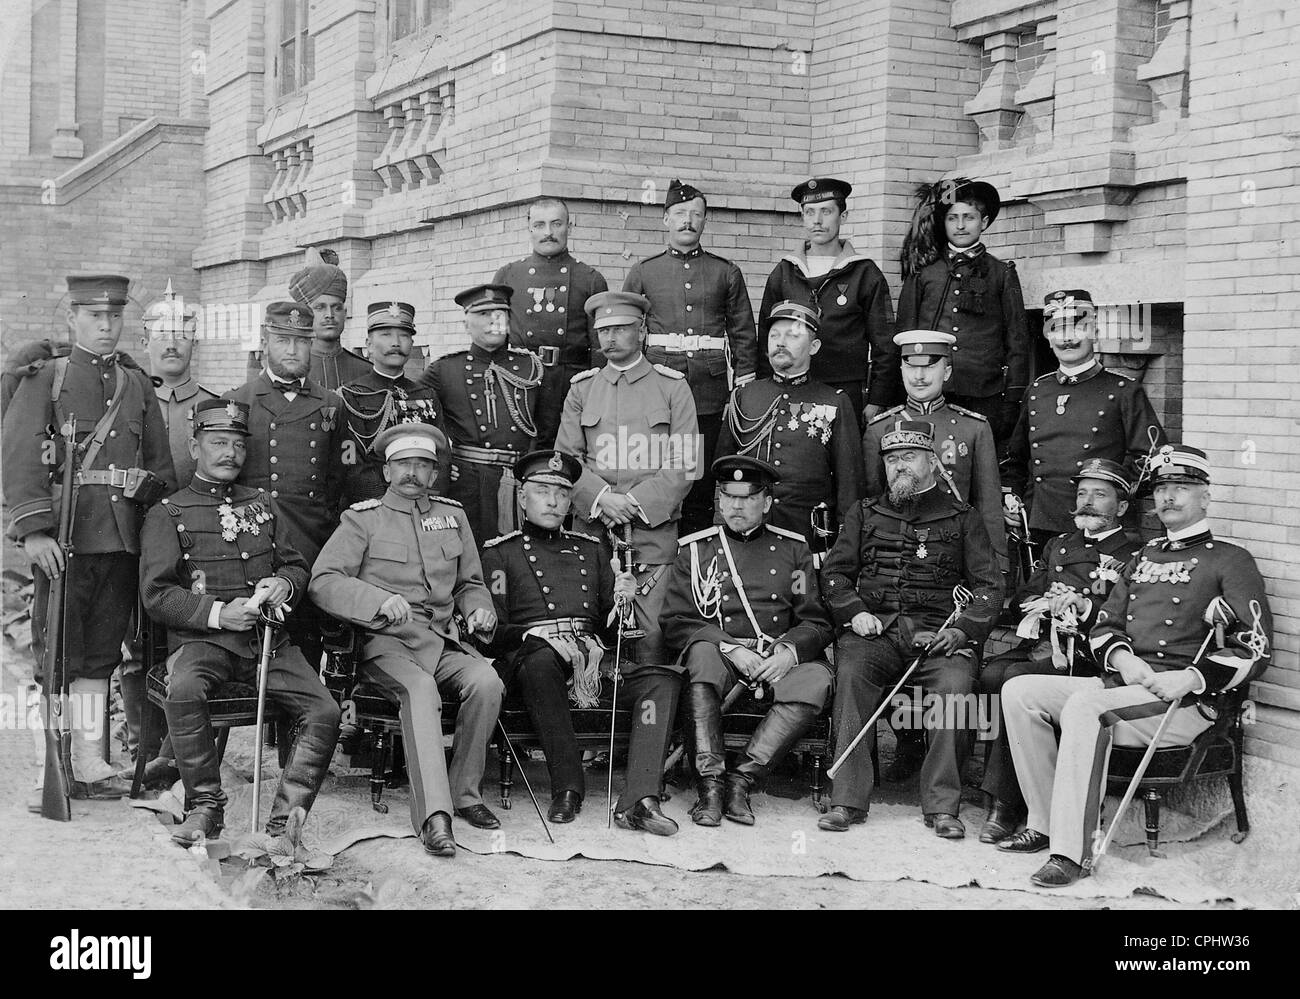 Officers of the multinational occupation force in Tientsin, 1900 - Stock Image